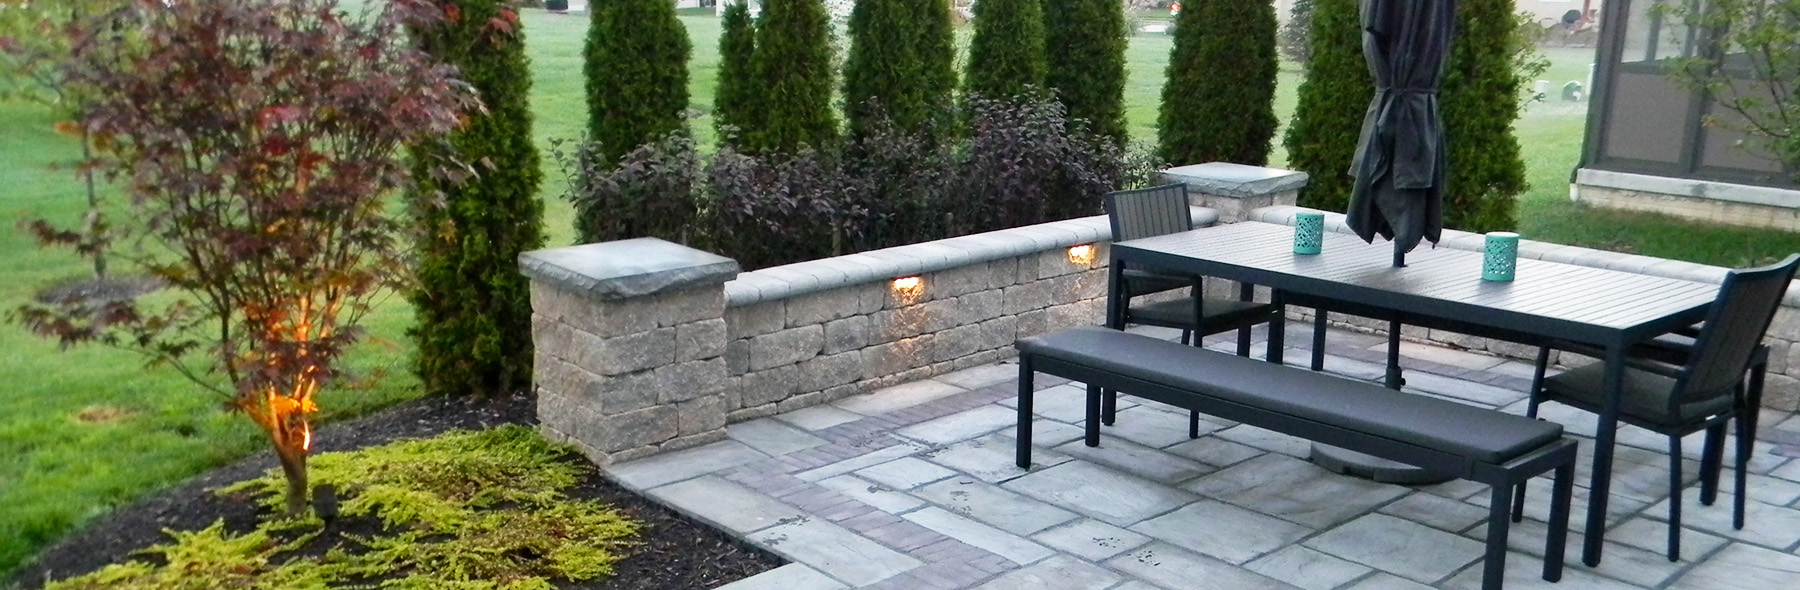 paver-patio-with-lights